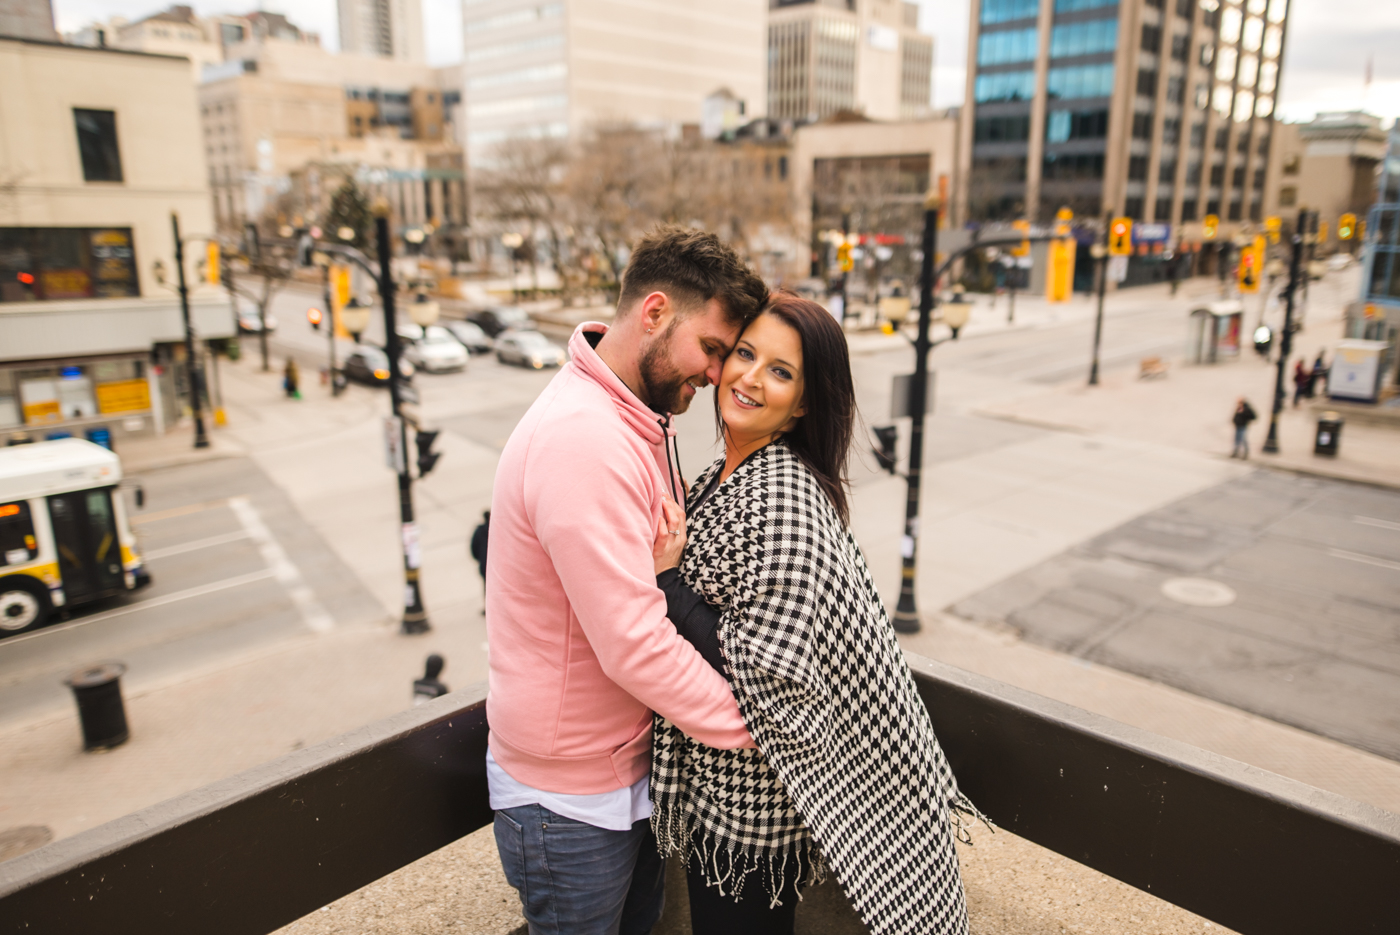 Alex & Michelle's Downtown Hamilton Gore Park James Street North King Street East Engagement Session Aidan Hennebry Urban Wedding Photographer Hush Hush Photography & Film-18.jpg